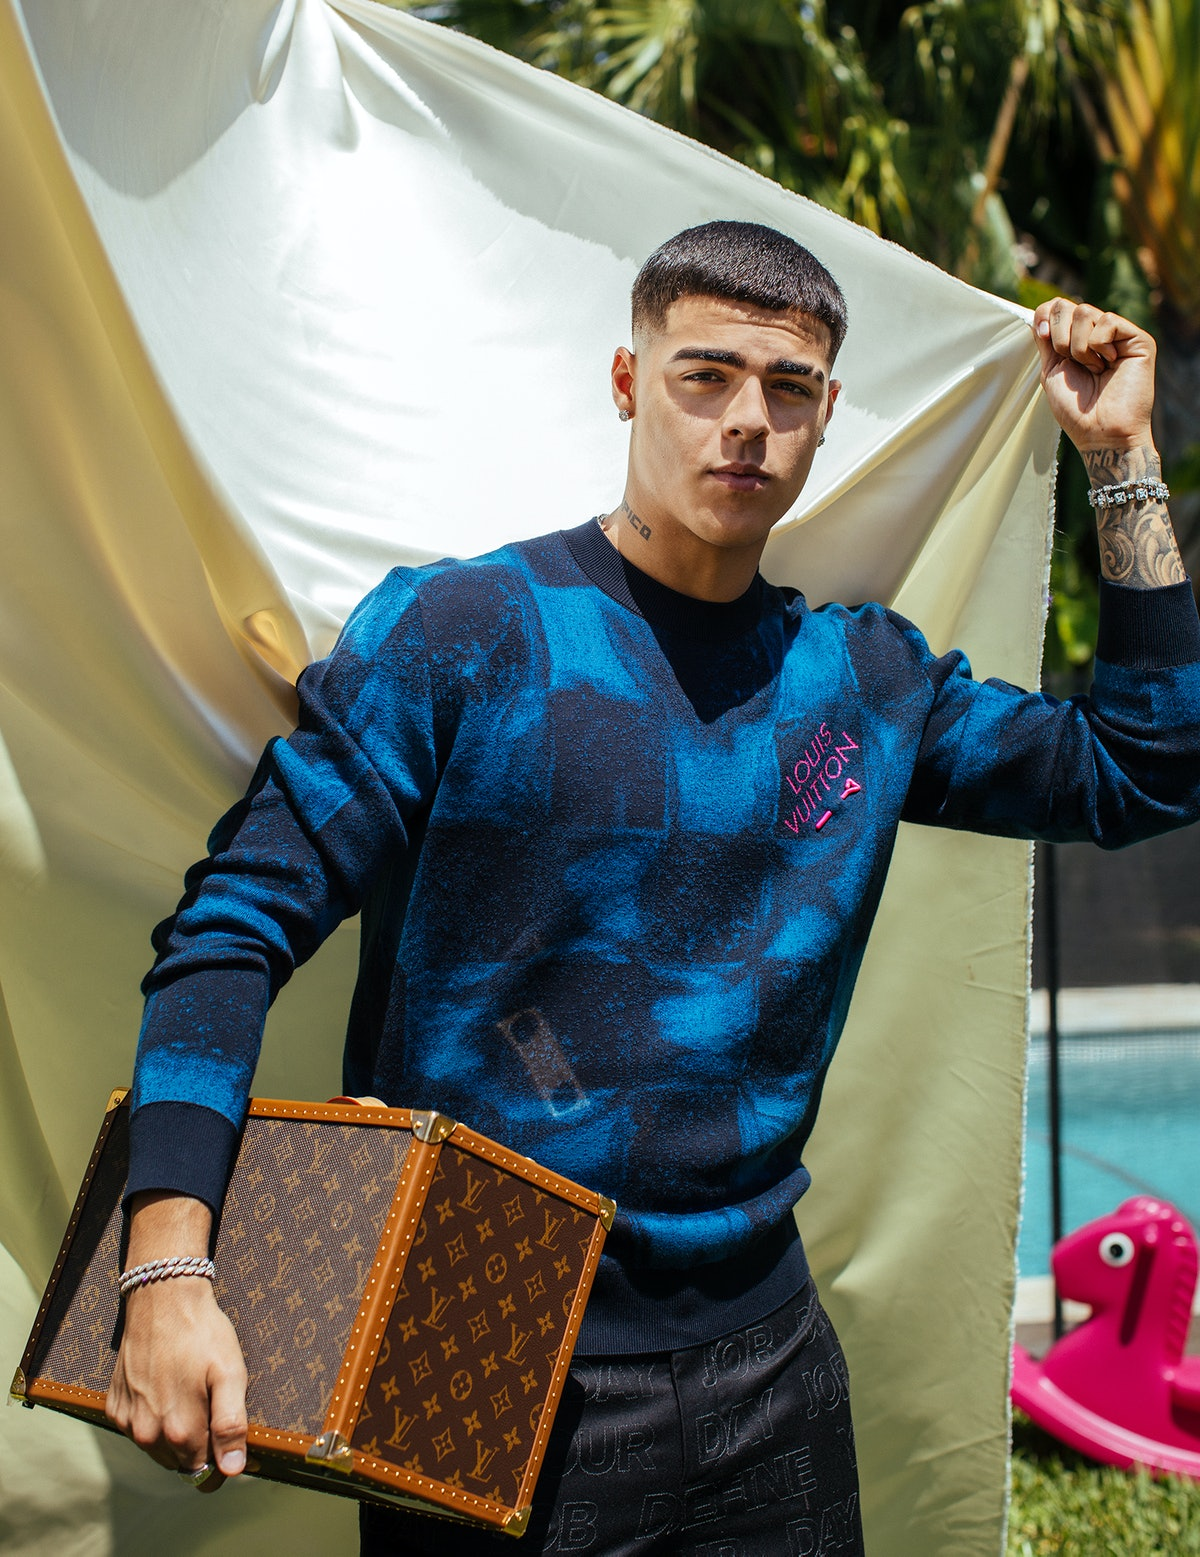 Lunay wears a Louis Vuitton Men's sweater, pants, and speaker trunk; Jewels by Dunn bracelets and rings; his own earrings.